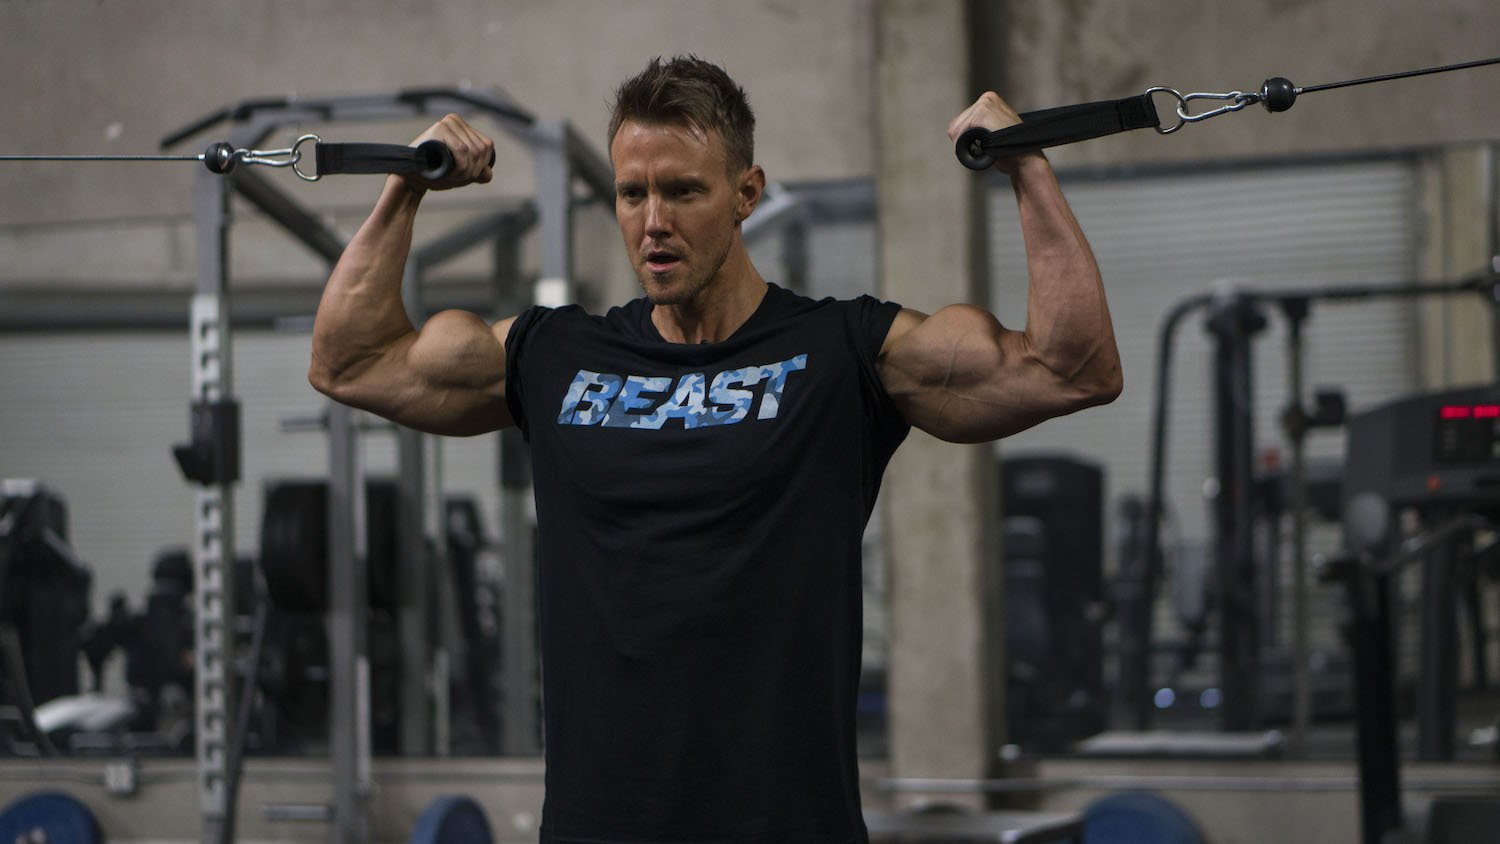 Complete Biceps Training With Rob Riches - Part II